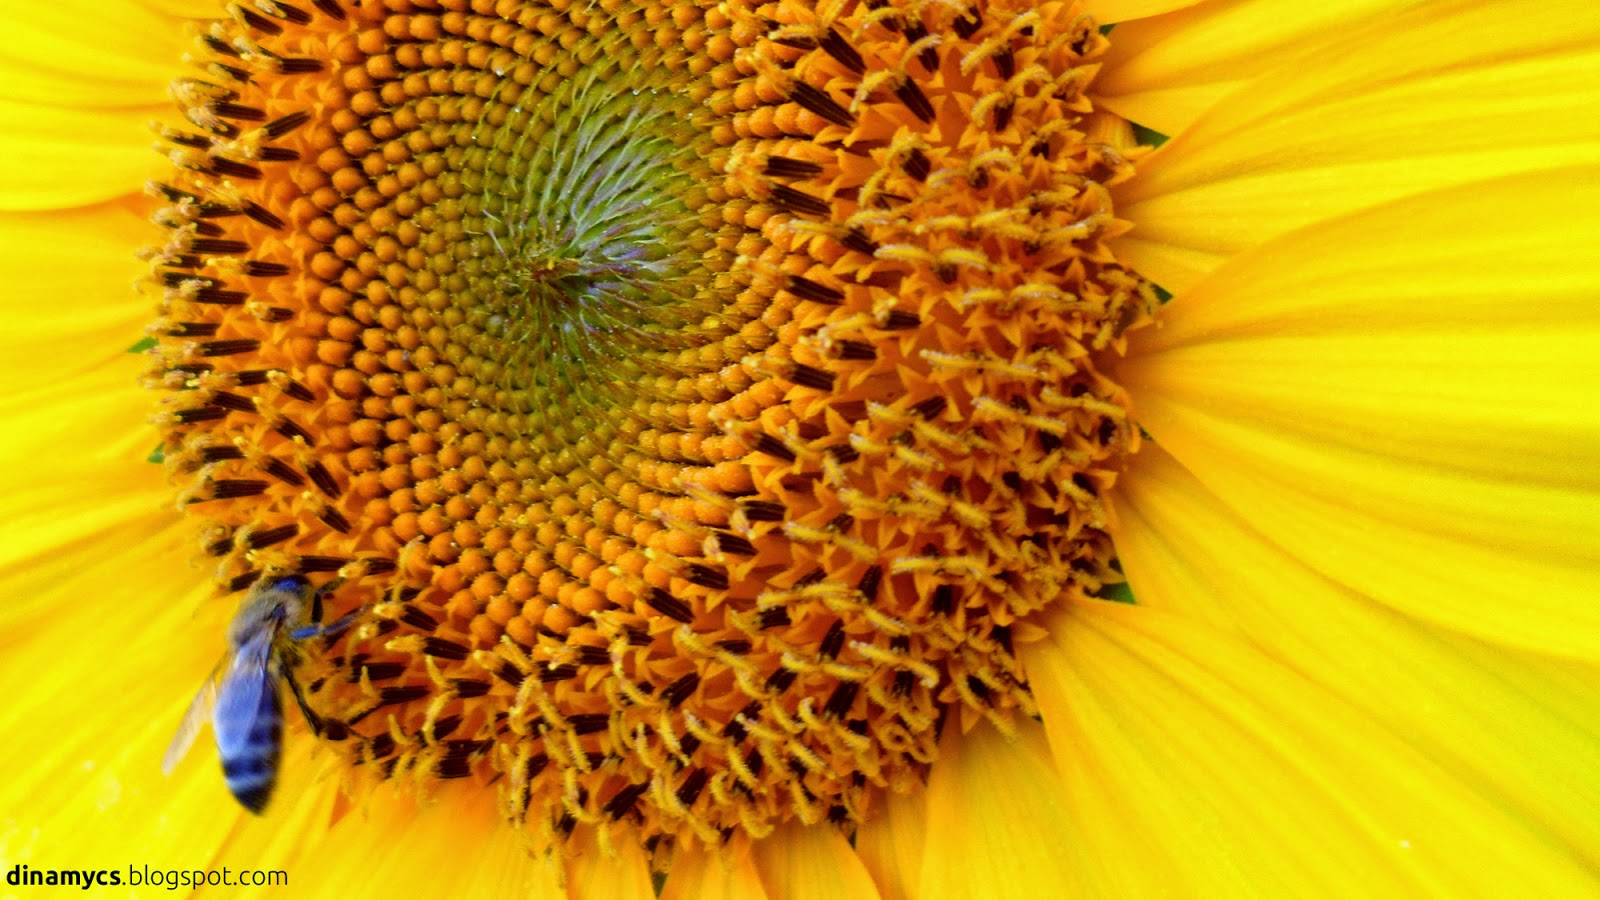 Sunflower wallpaper - fondos de girasoles